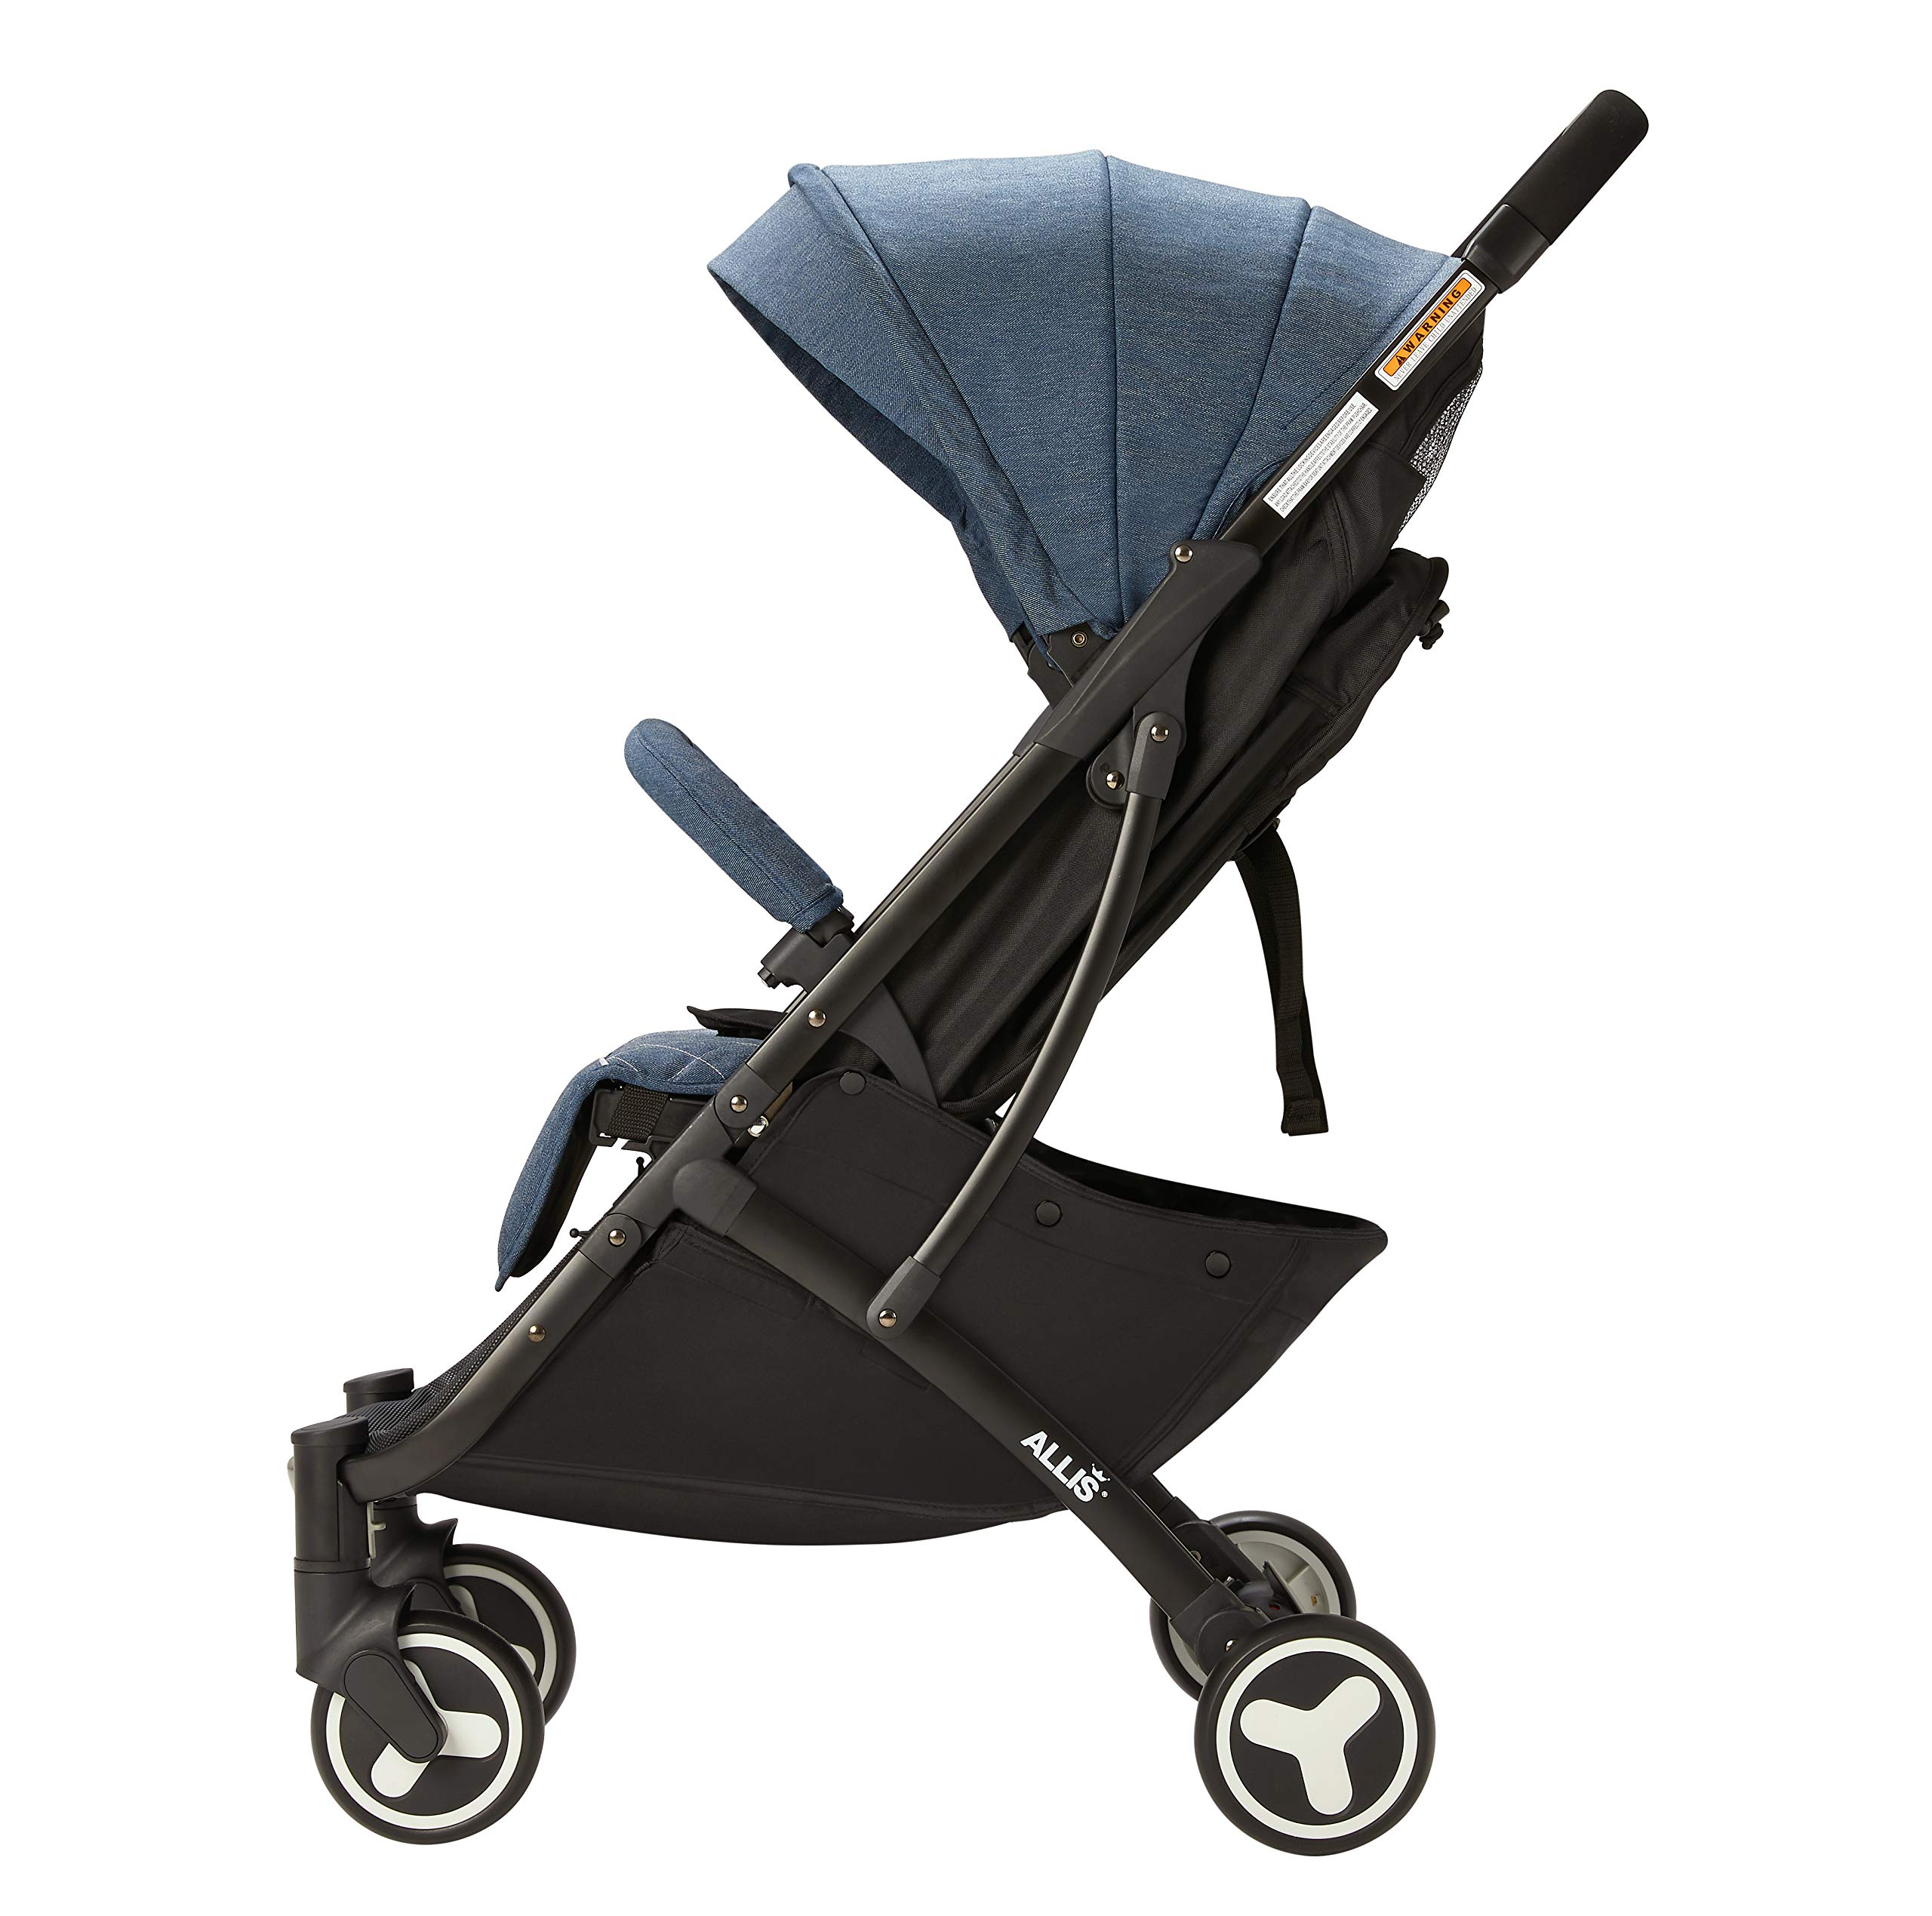 Allis Lightweight Plume Stroller Baby Buggy - Denim Allis Baby Made according to British Standard EN1888 and Fire Safety Regulations 1988. Lockable 360 swivel wheels, removable and suspension, Peek A Boo window/ Recline Seat/ Lie-flat position From 6M (Upto 15Kg Approx). Lightweight 6.7Kg only, Easy to fold with one hand only 4